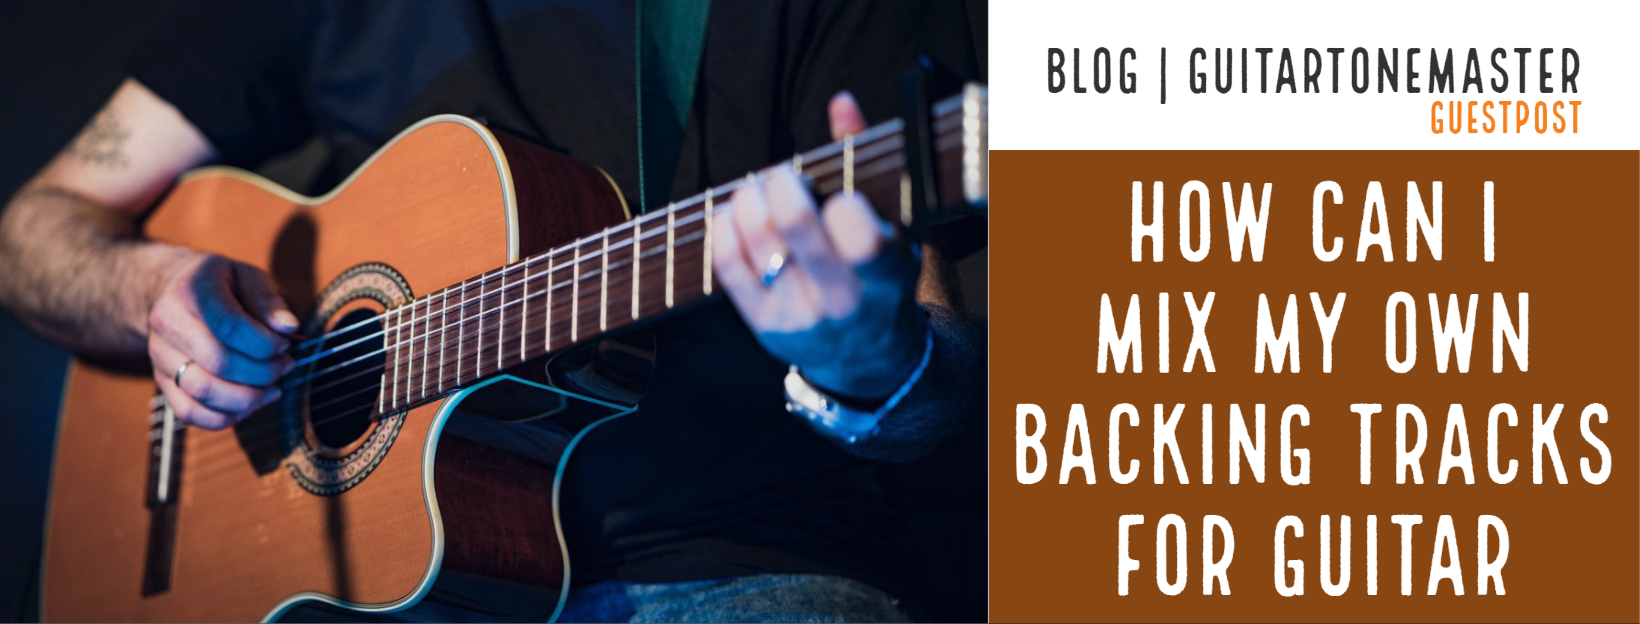 How can I mix my own backing tracks for guitar